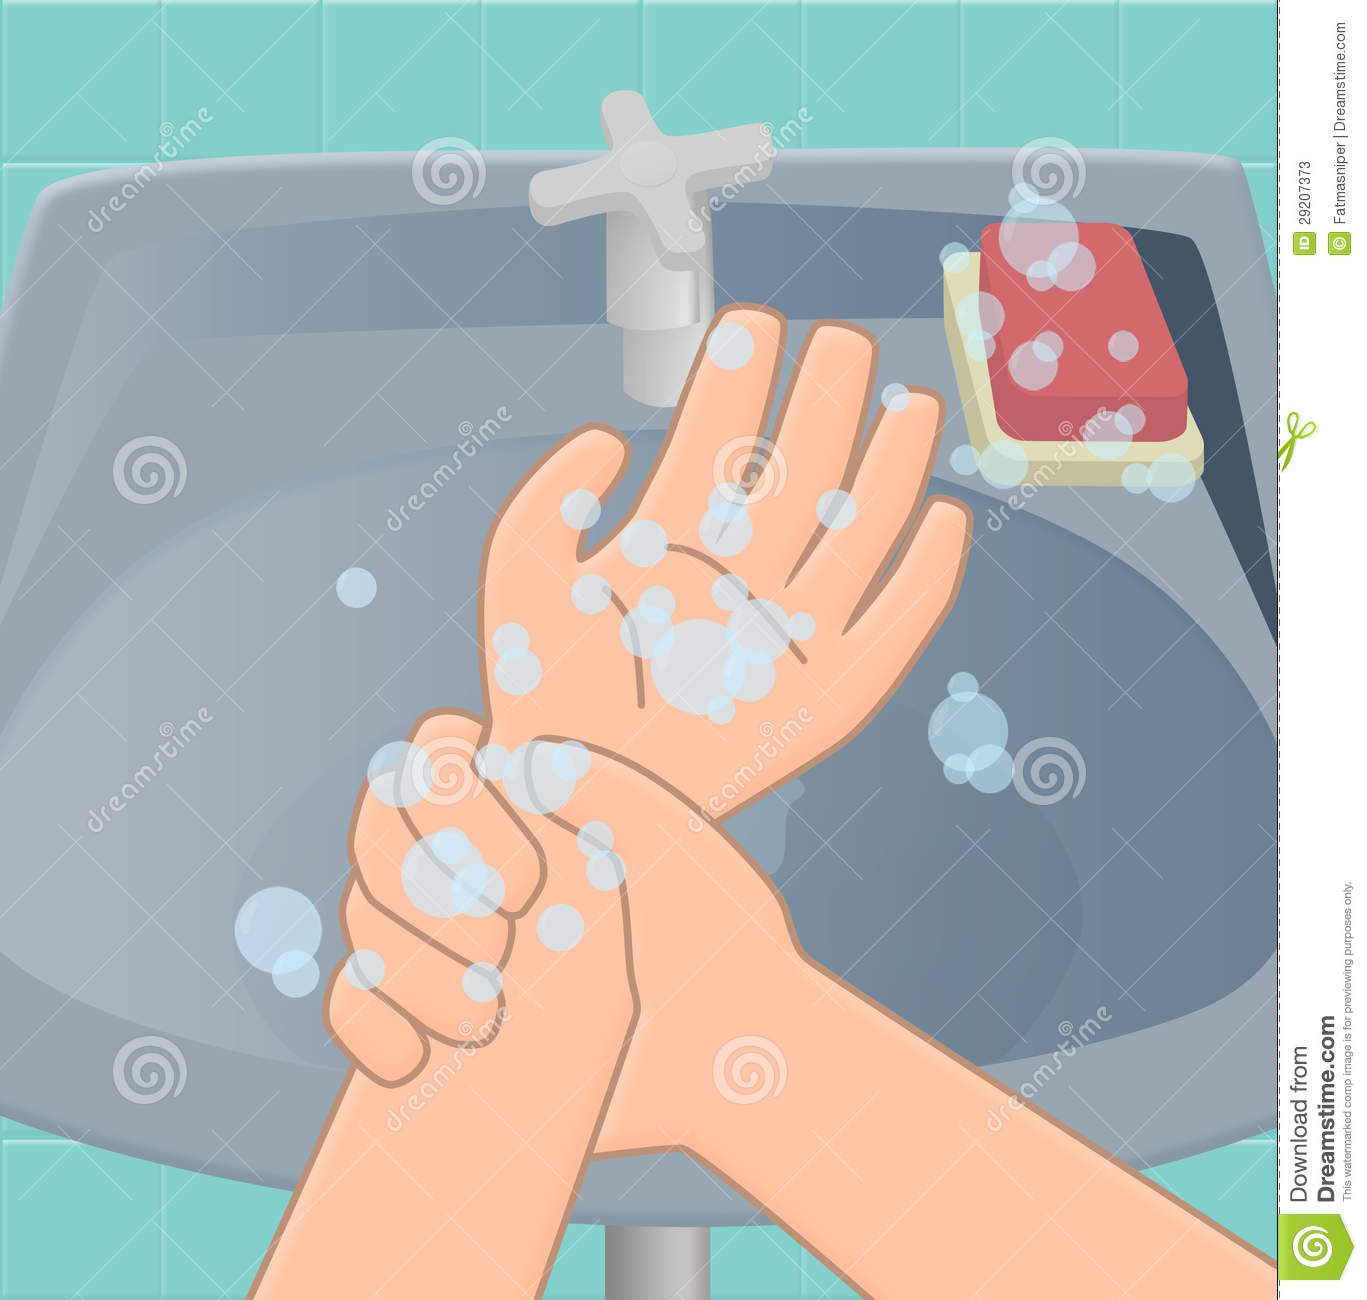 Eighth stage of washing hands